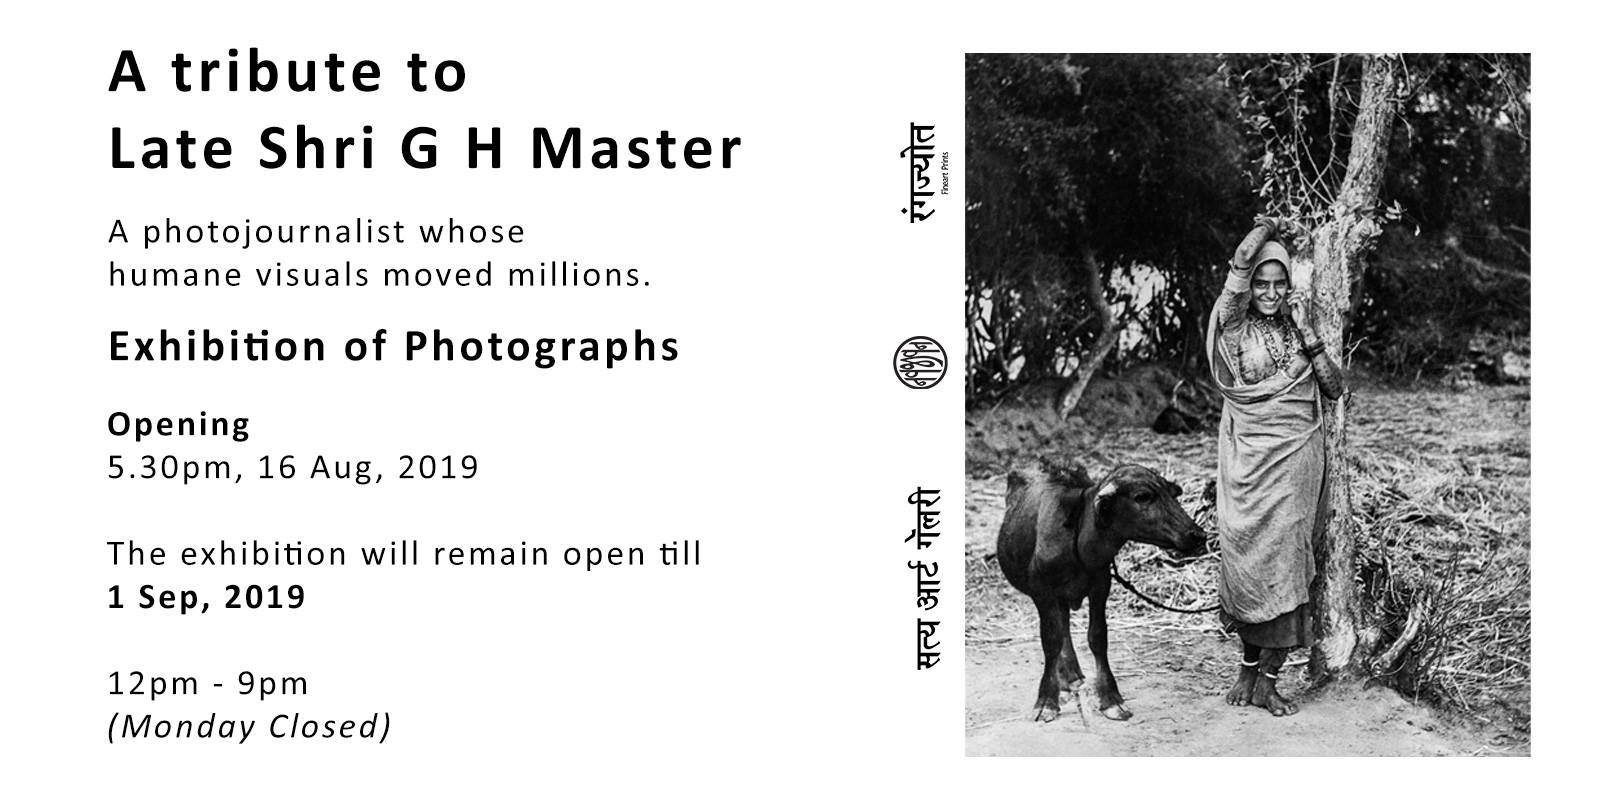 https://creativeyatra.com/wp-content/uploads/2019/08/A-Tribute-to-Late-Shri-G-H-Master-Exhibition-of-Photographs.jpg